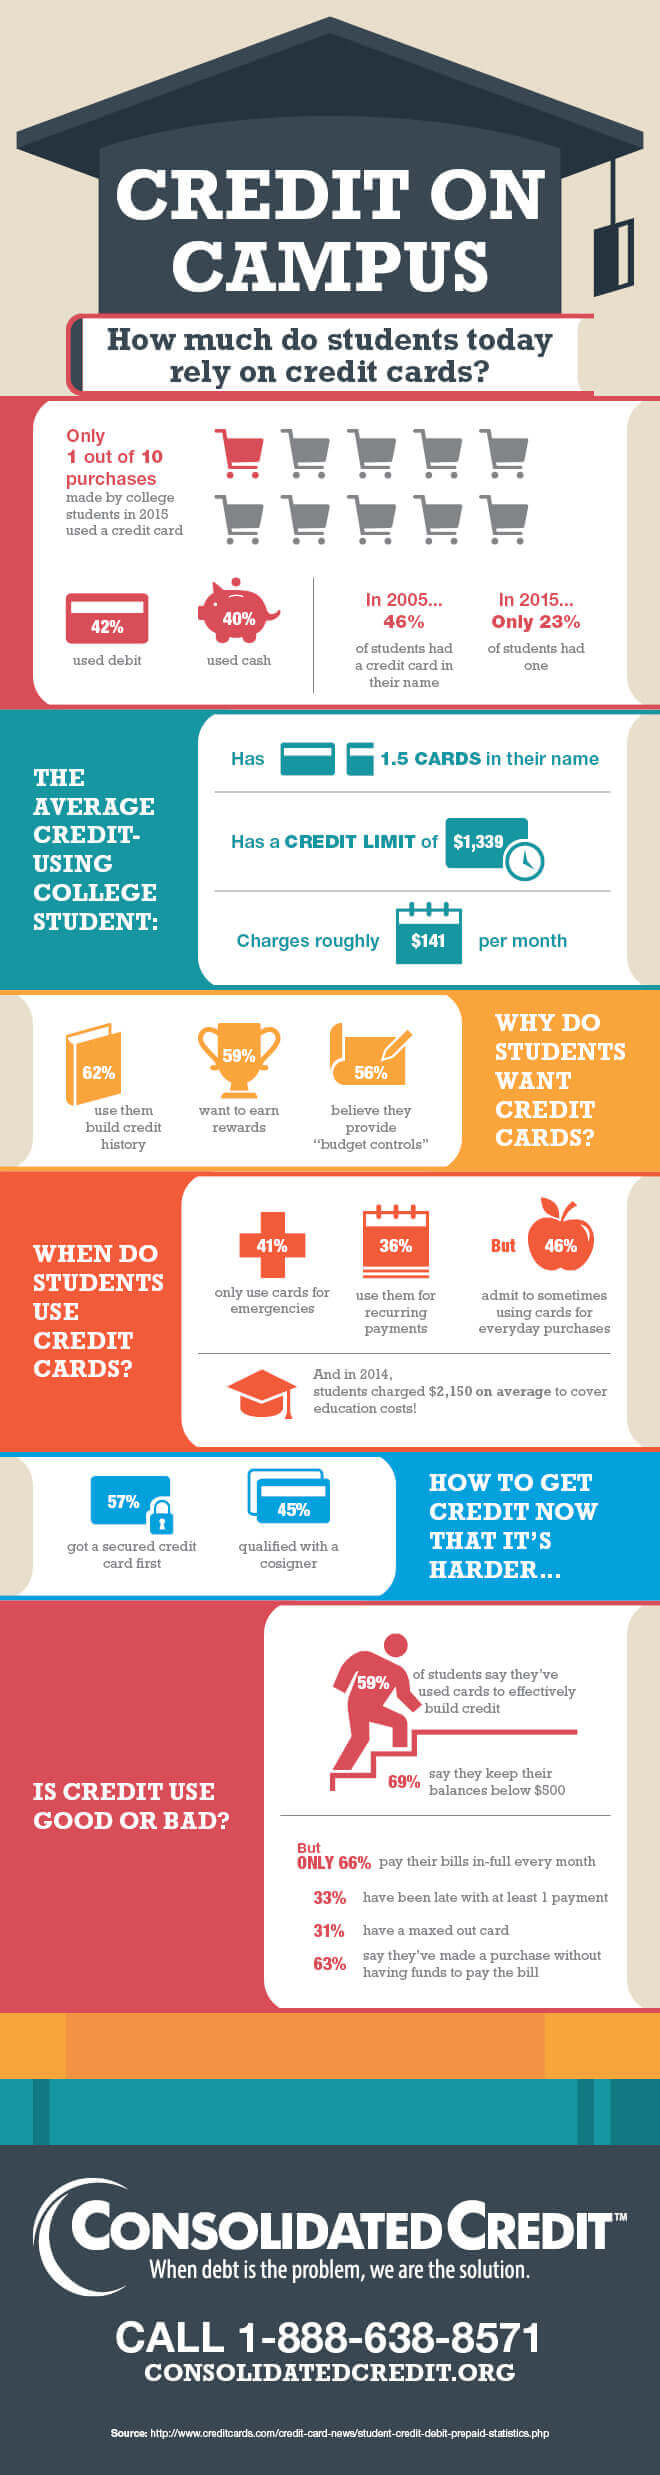 Campus credit card use remains high